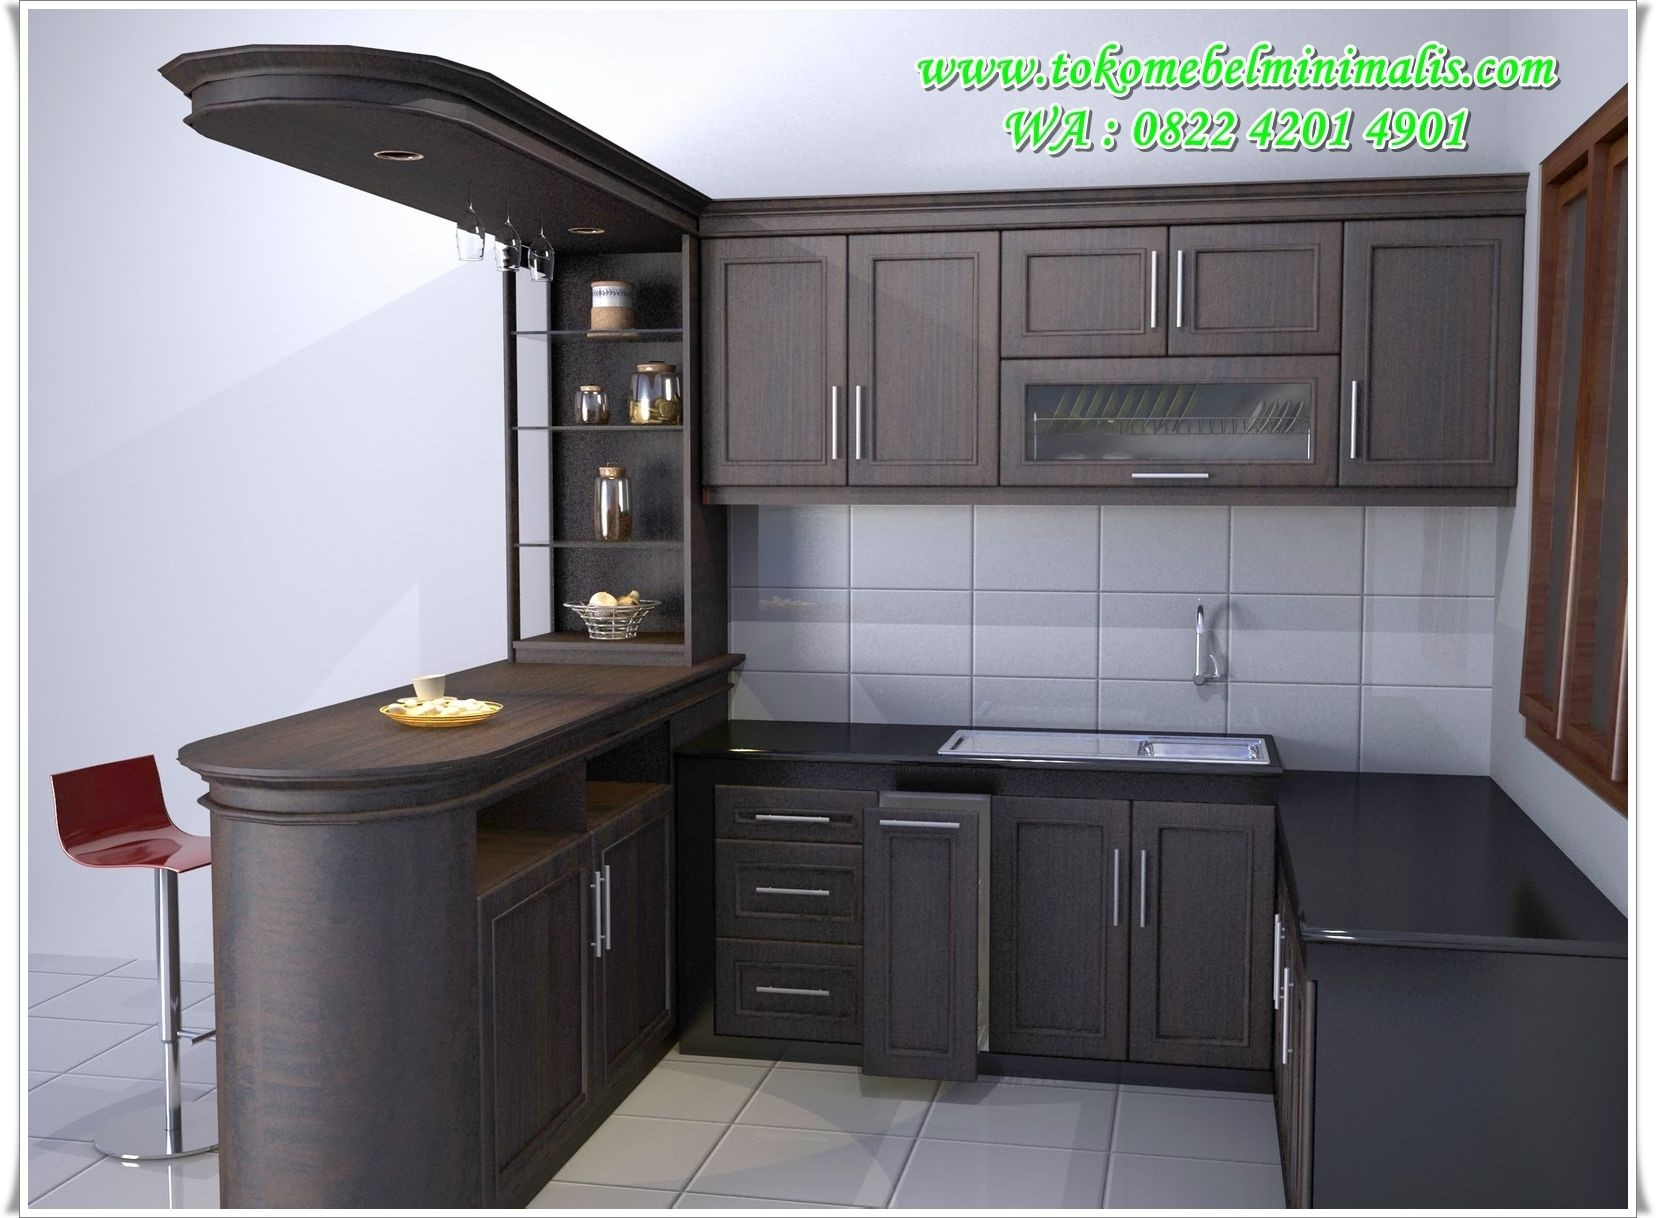 Tipe Dapur Modern Desain Kitchen Set Kitchen Set Murah Kitchen Set Minimalis Modern